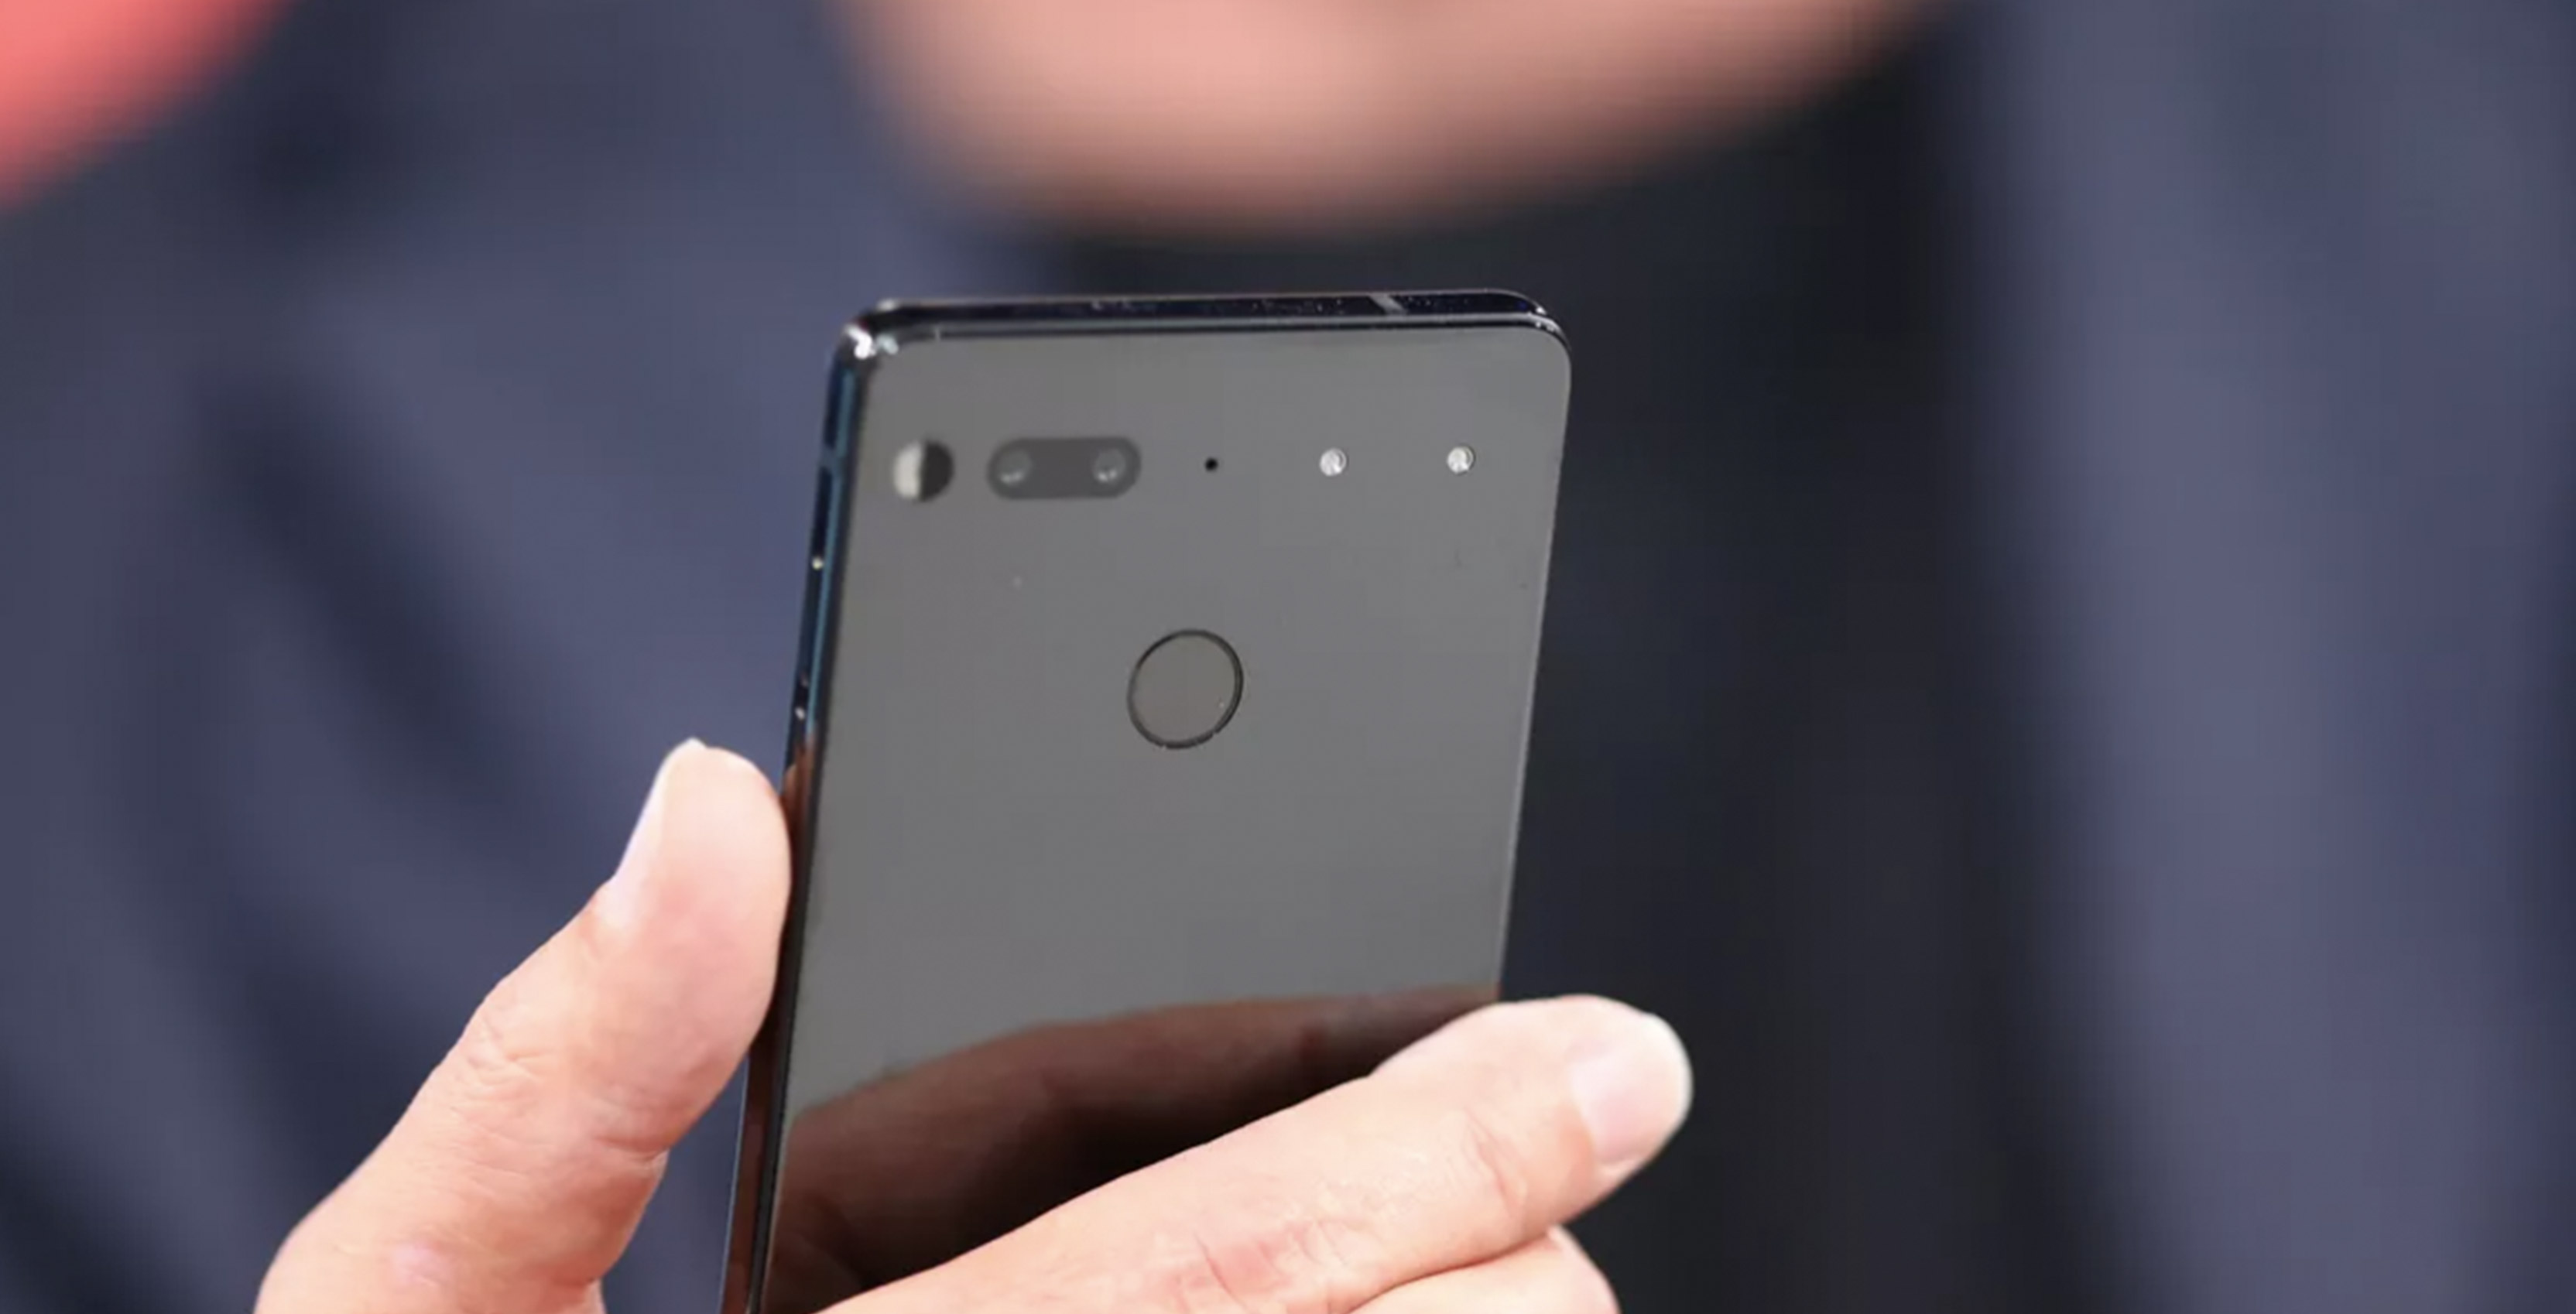 Essential phone in hand